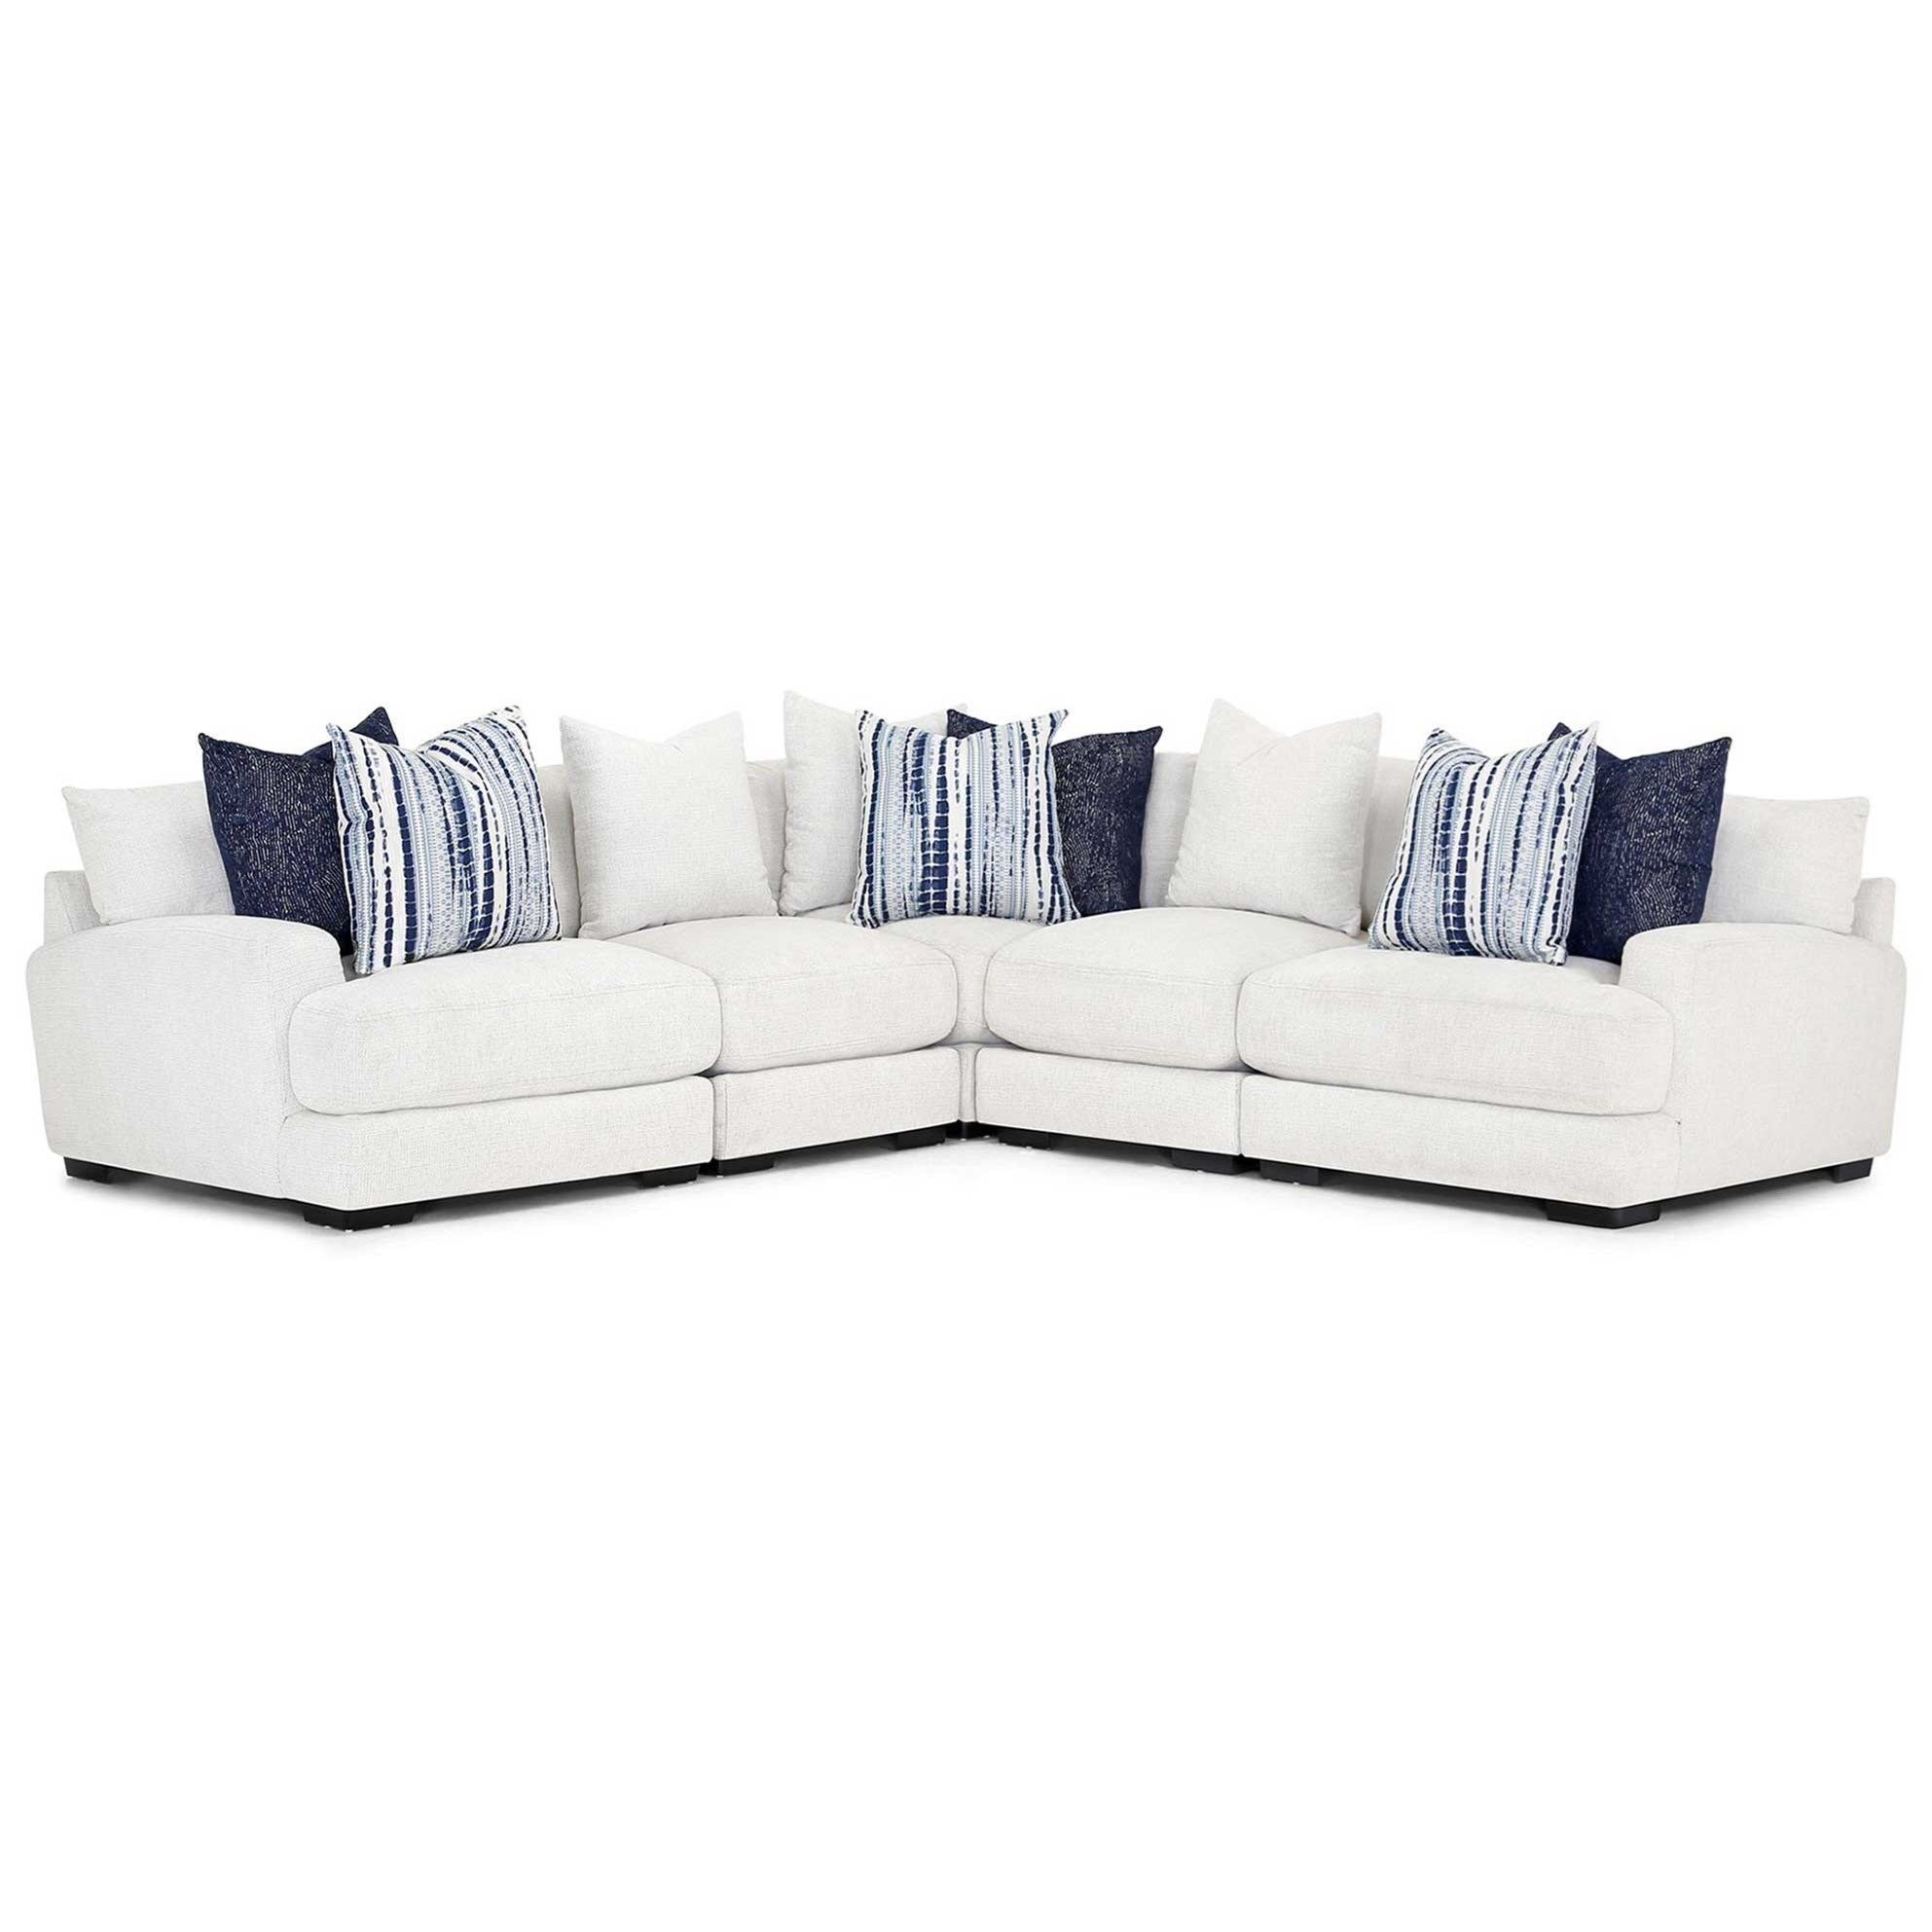 L-Shaped Sectional Sofa with Track Arms